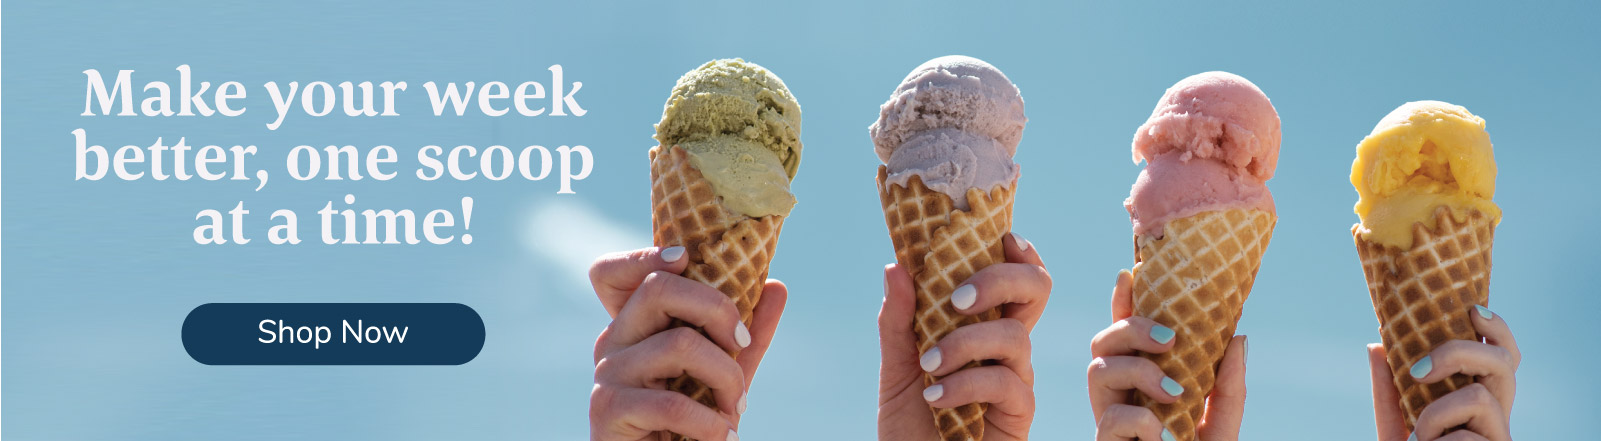 Make you week better, one scoop at a time